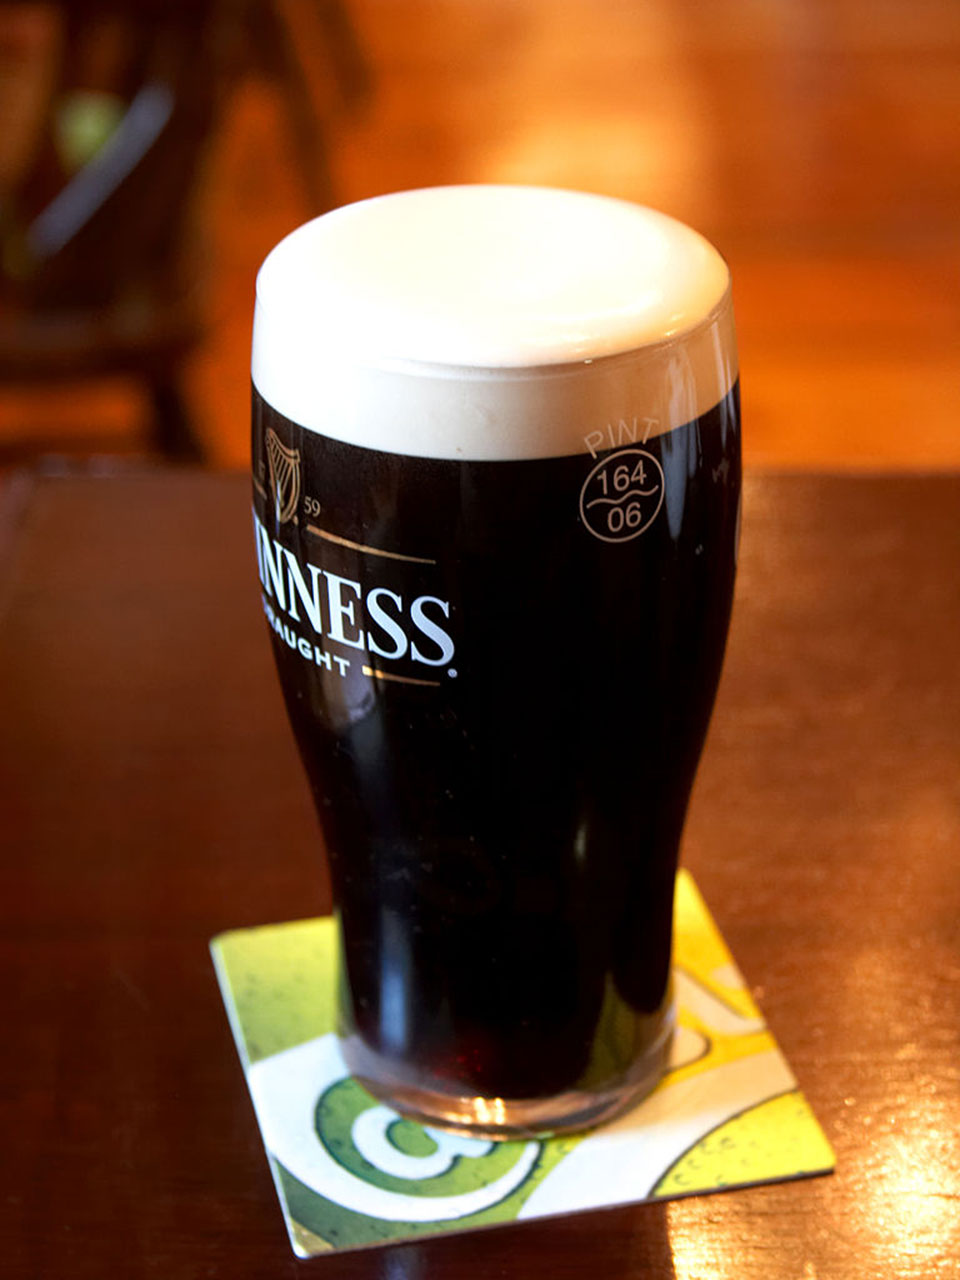 Is Guinness low-calorie?